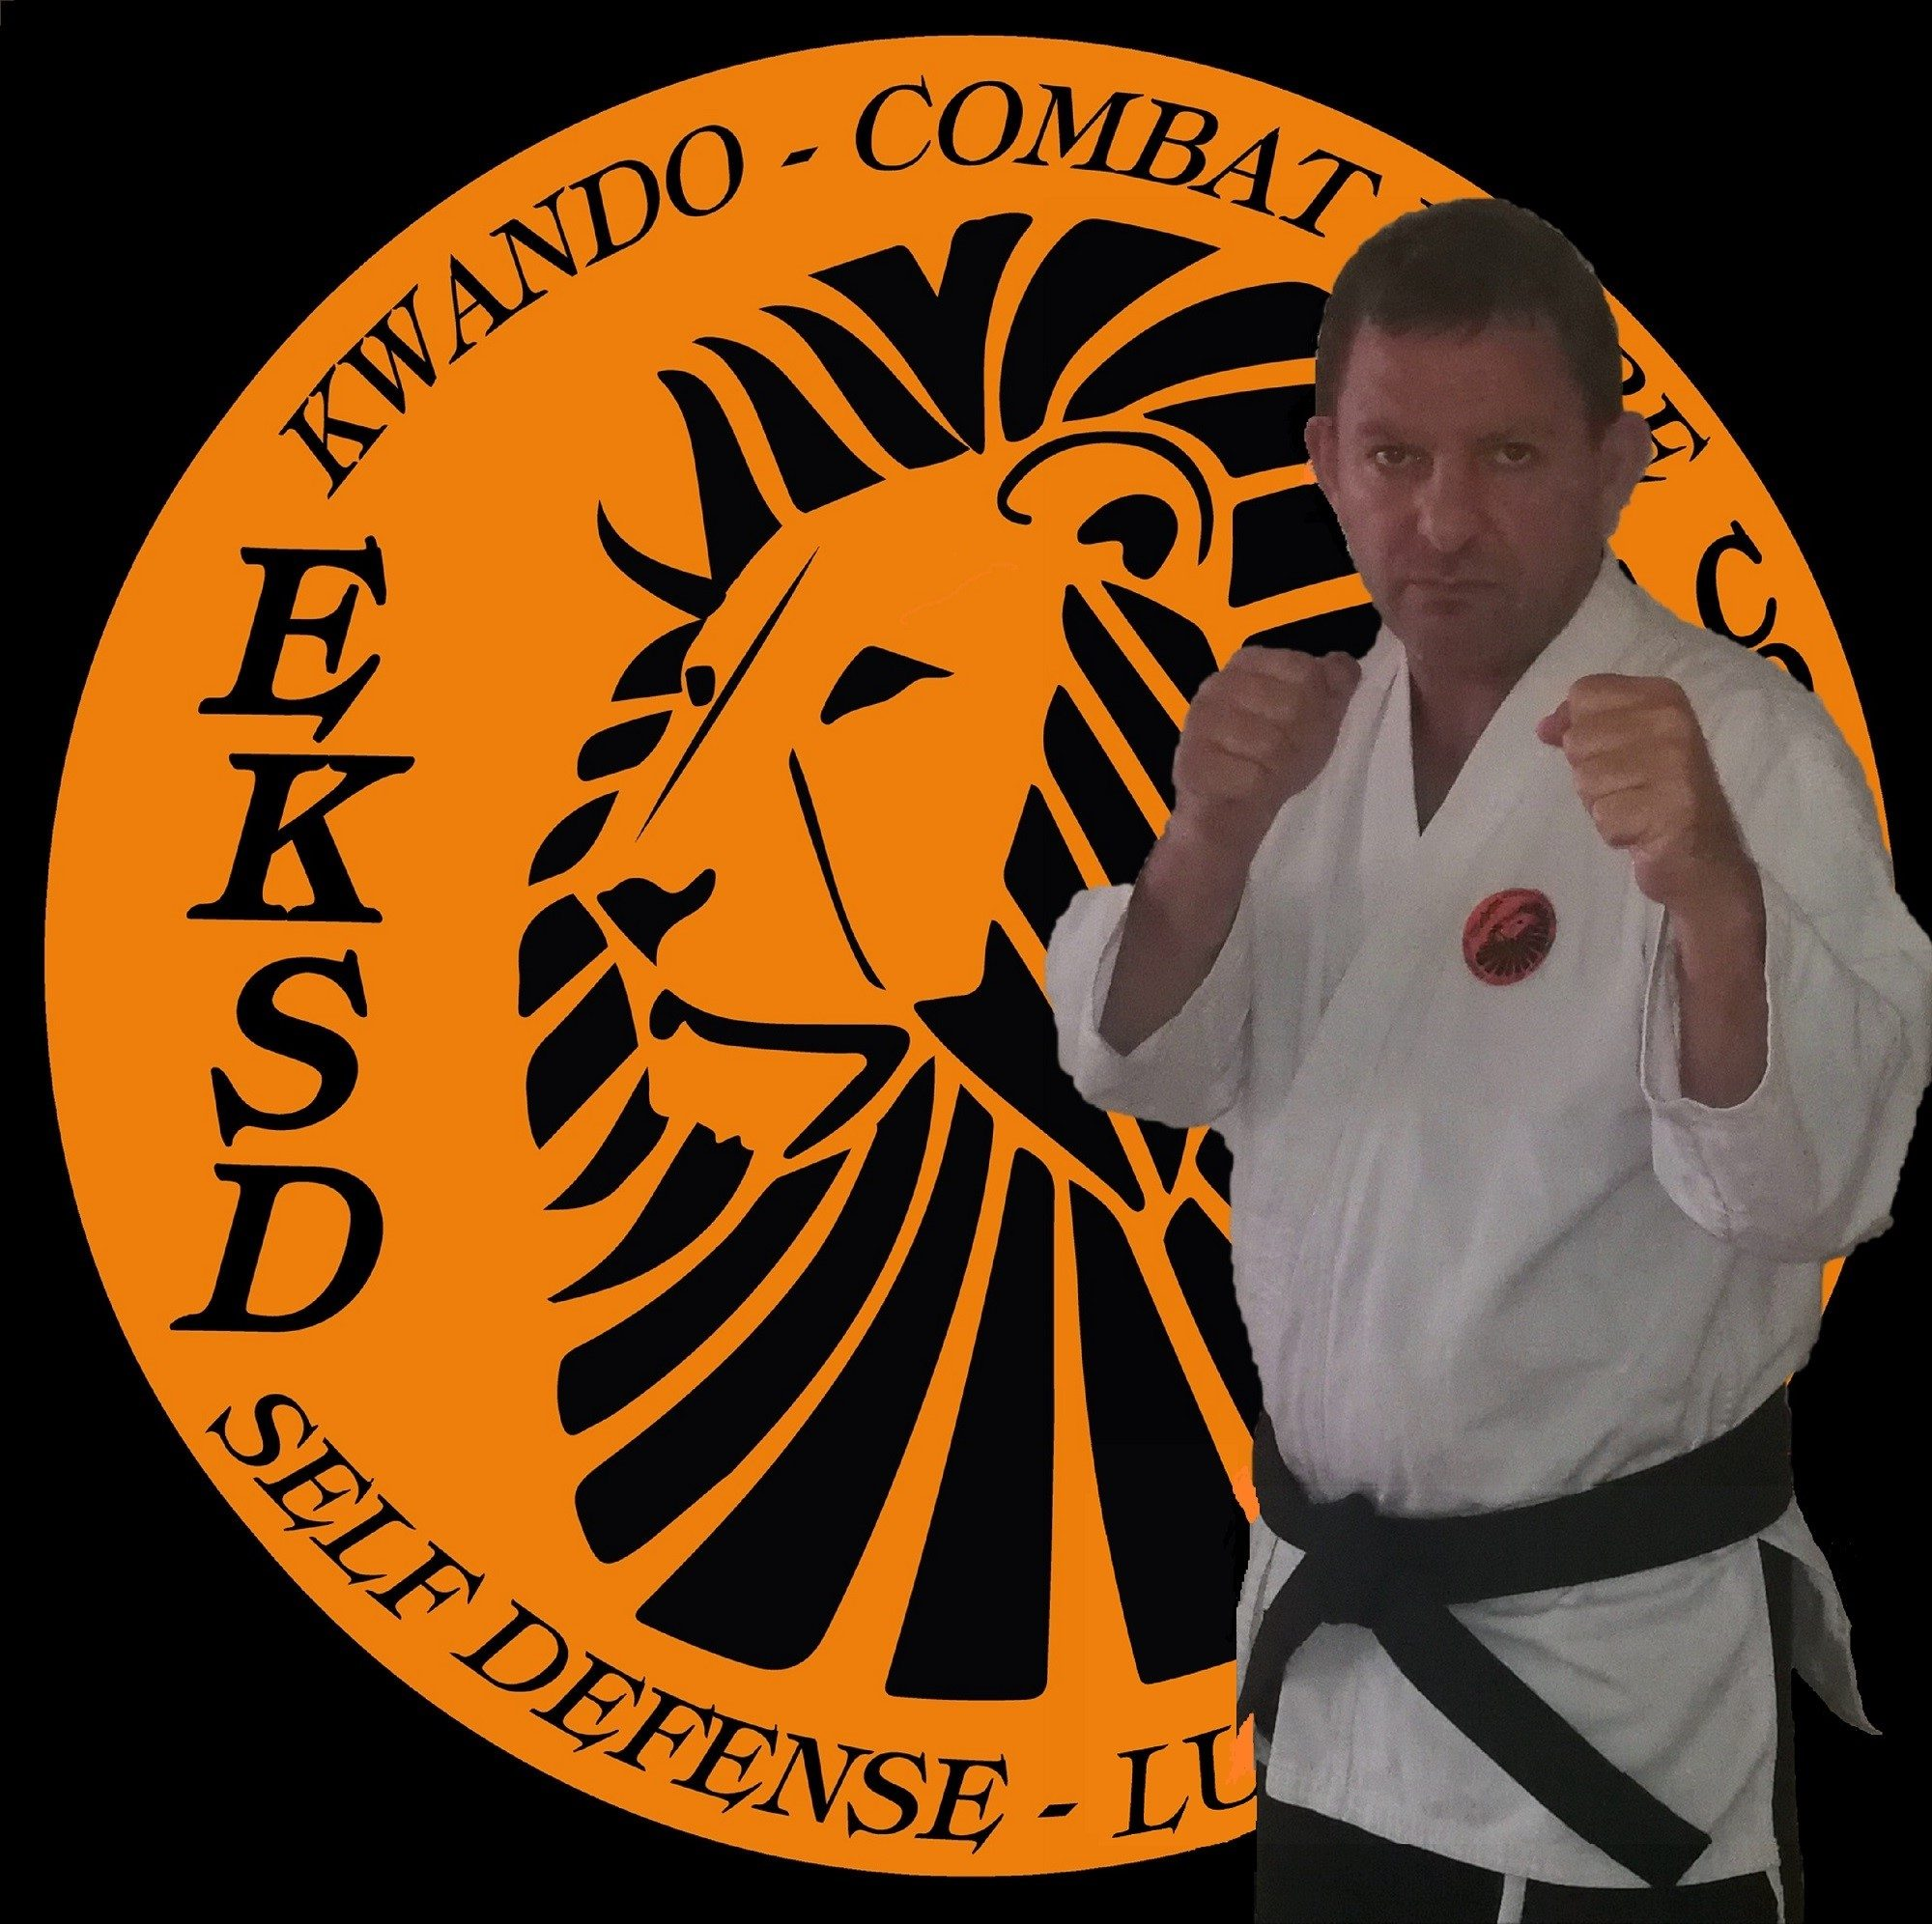 Kwando Self Defense Combat Libre